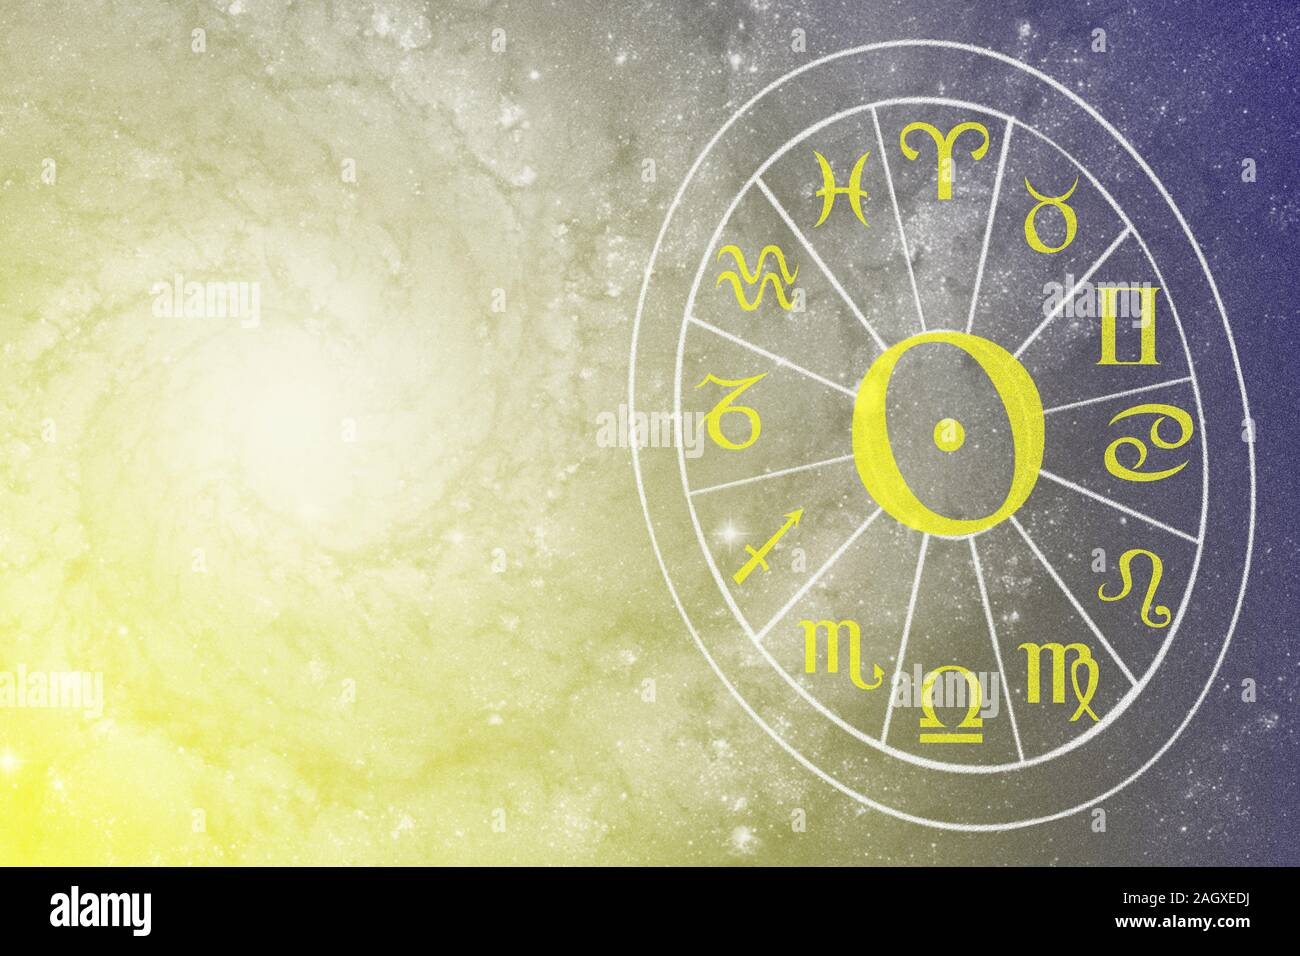 Illustration Of Astrology Themes Twelve Signs Of The Zodiac On Bright Abstract Background Space For Text Stock Photo Alamy